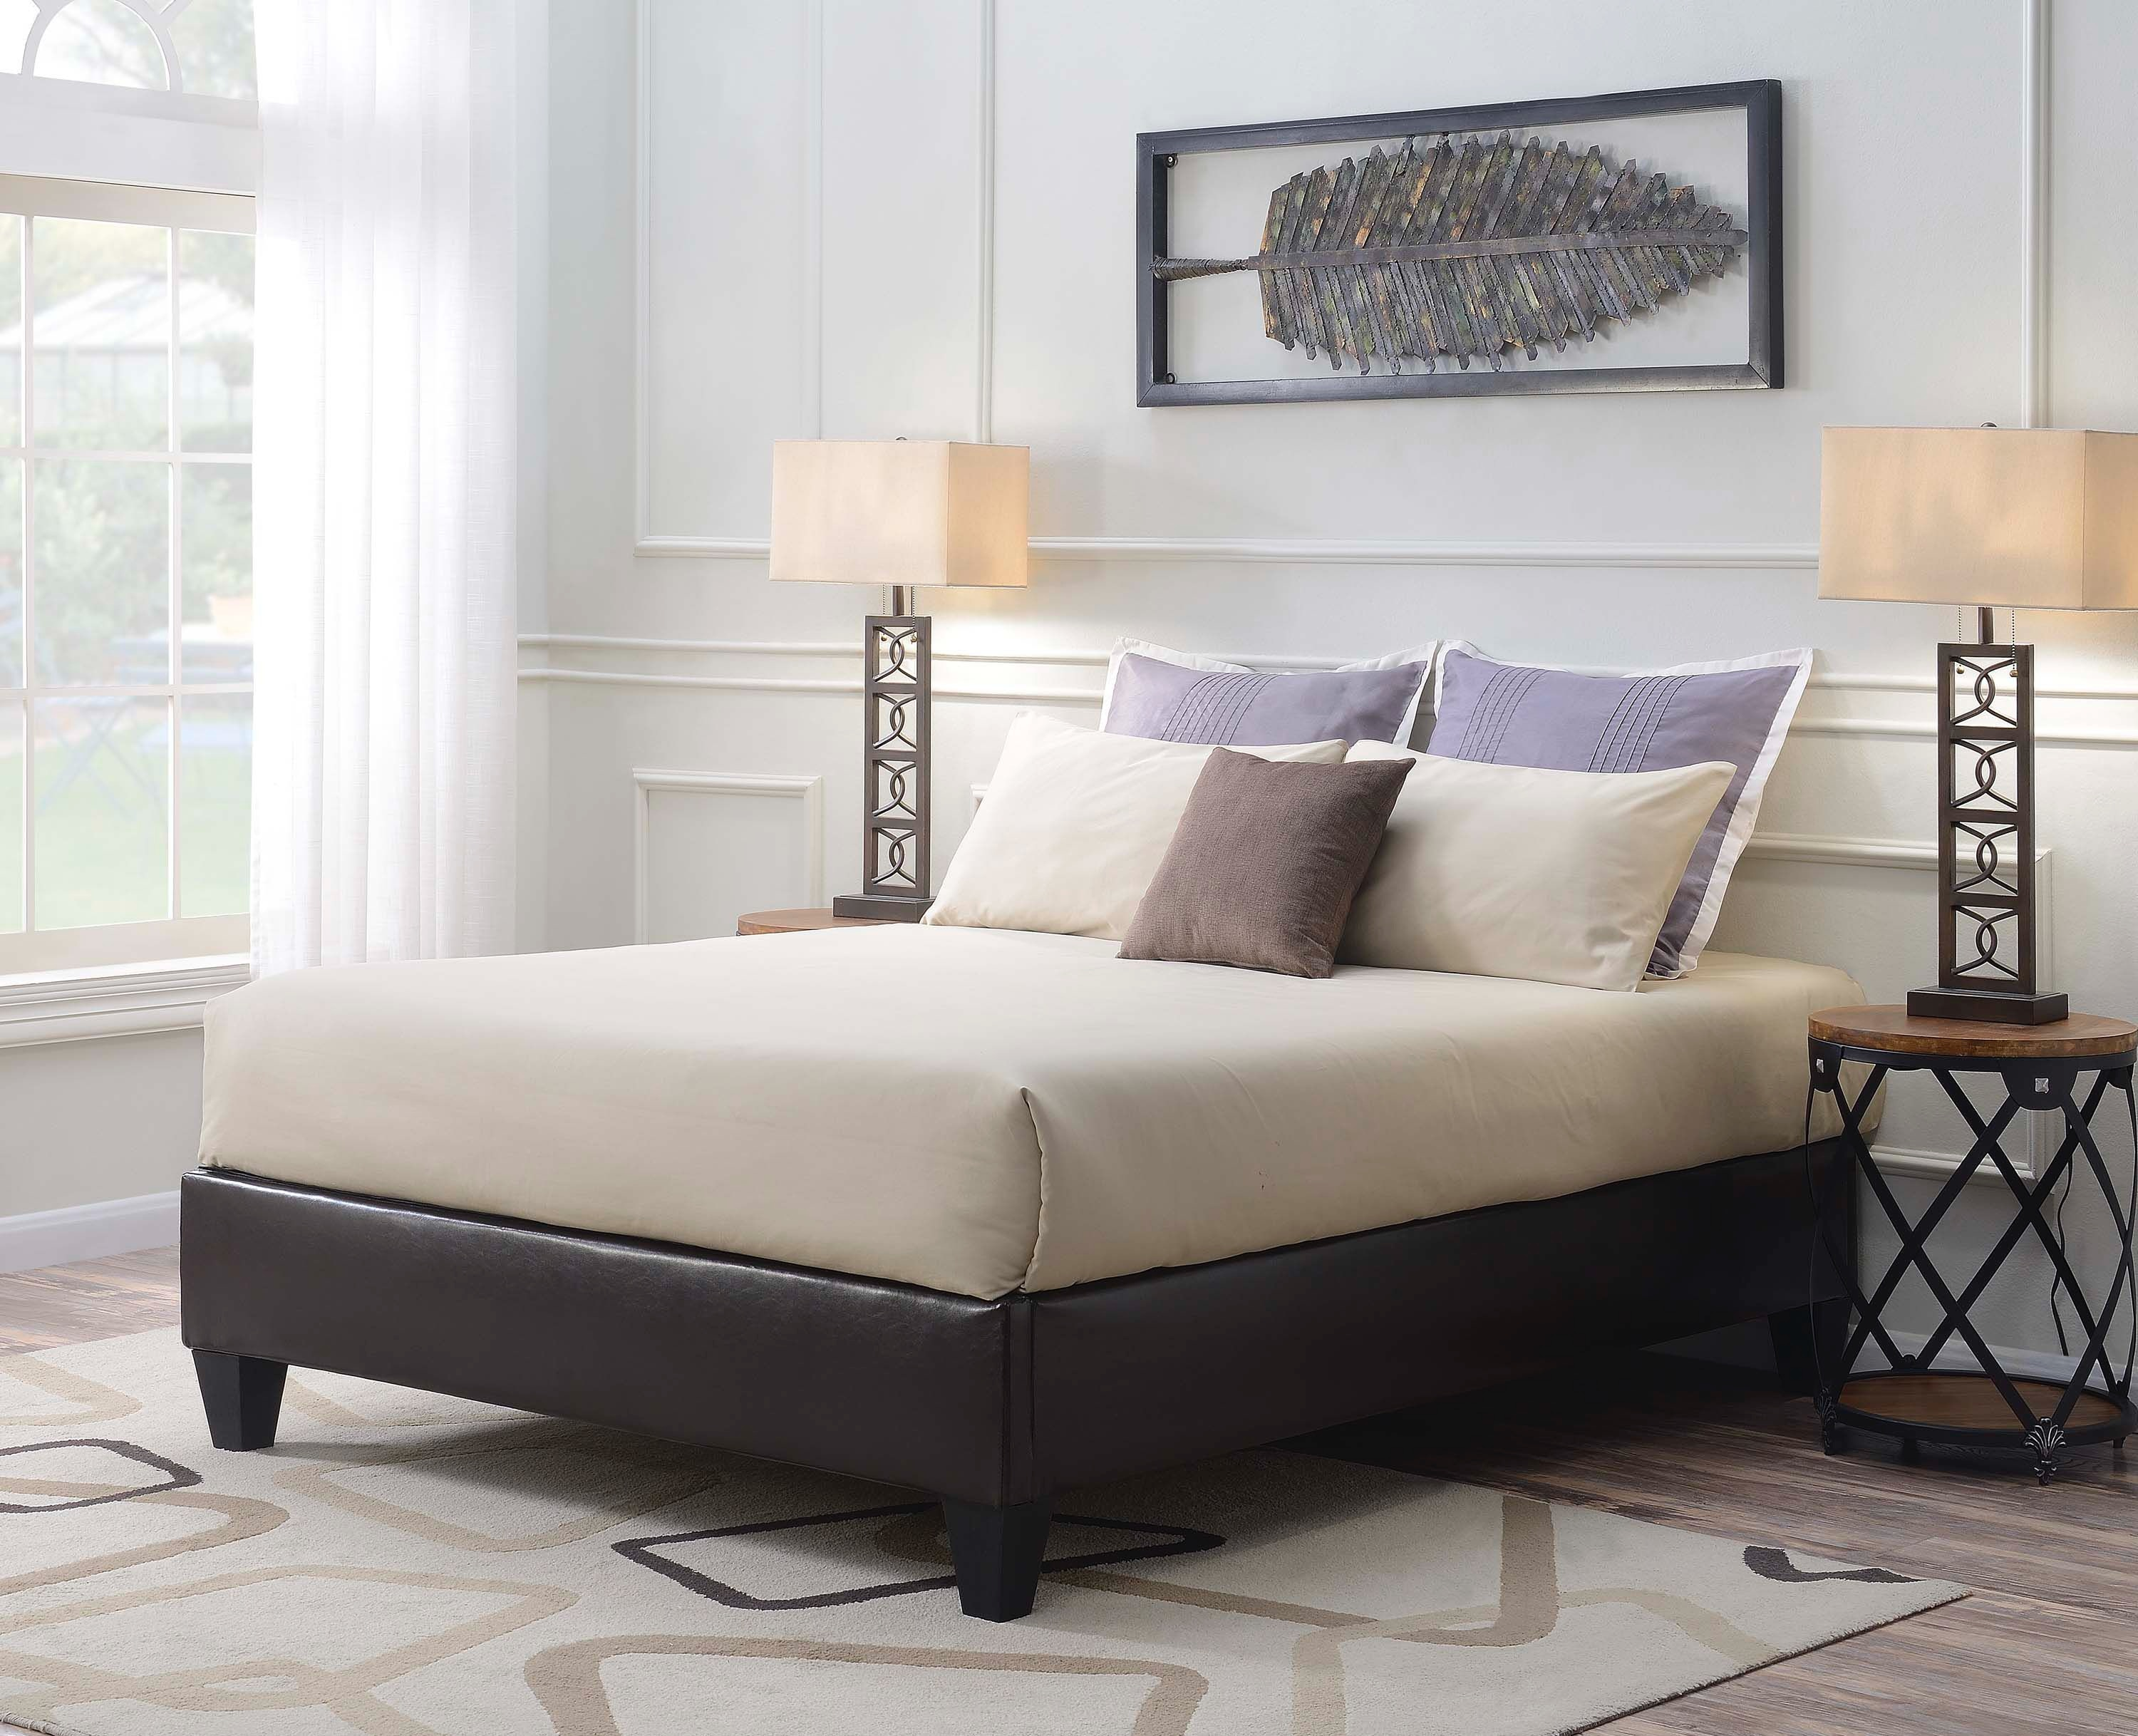 types of bedroom furniture. Abby Types Of Bedroom Furniture